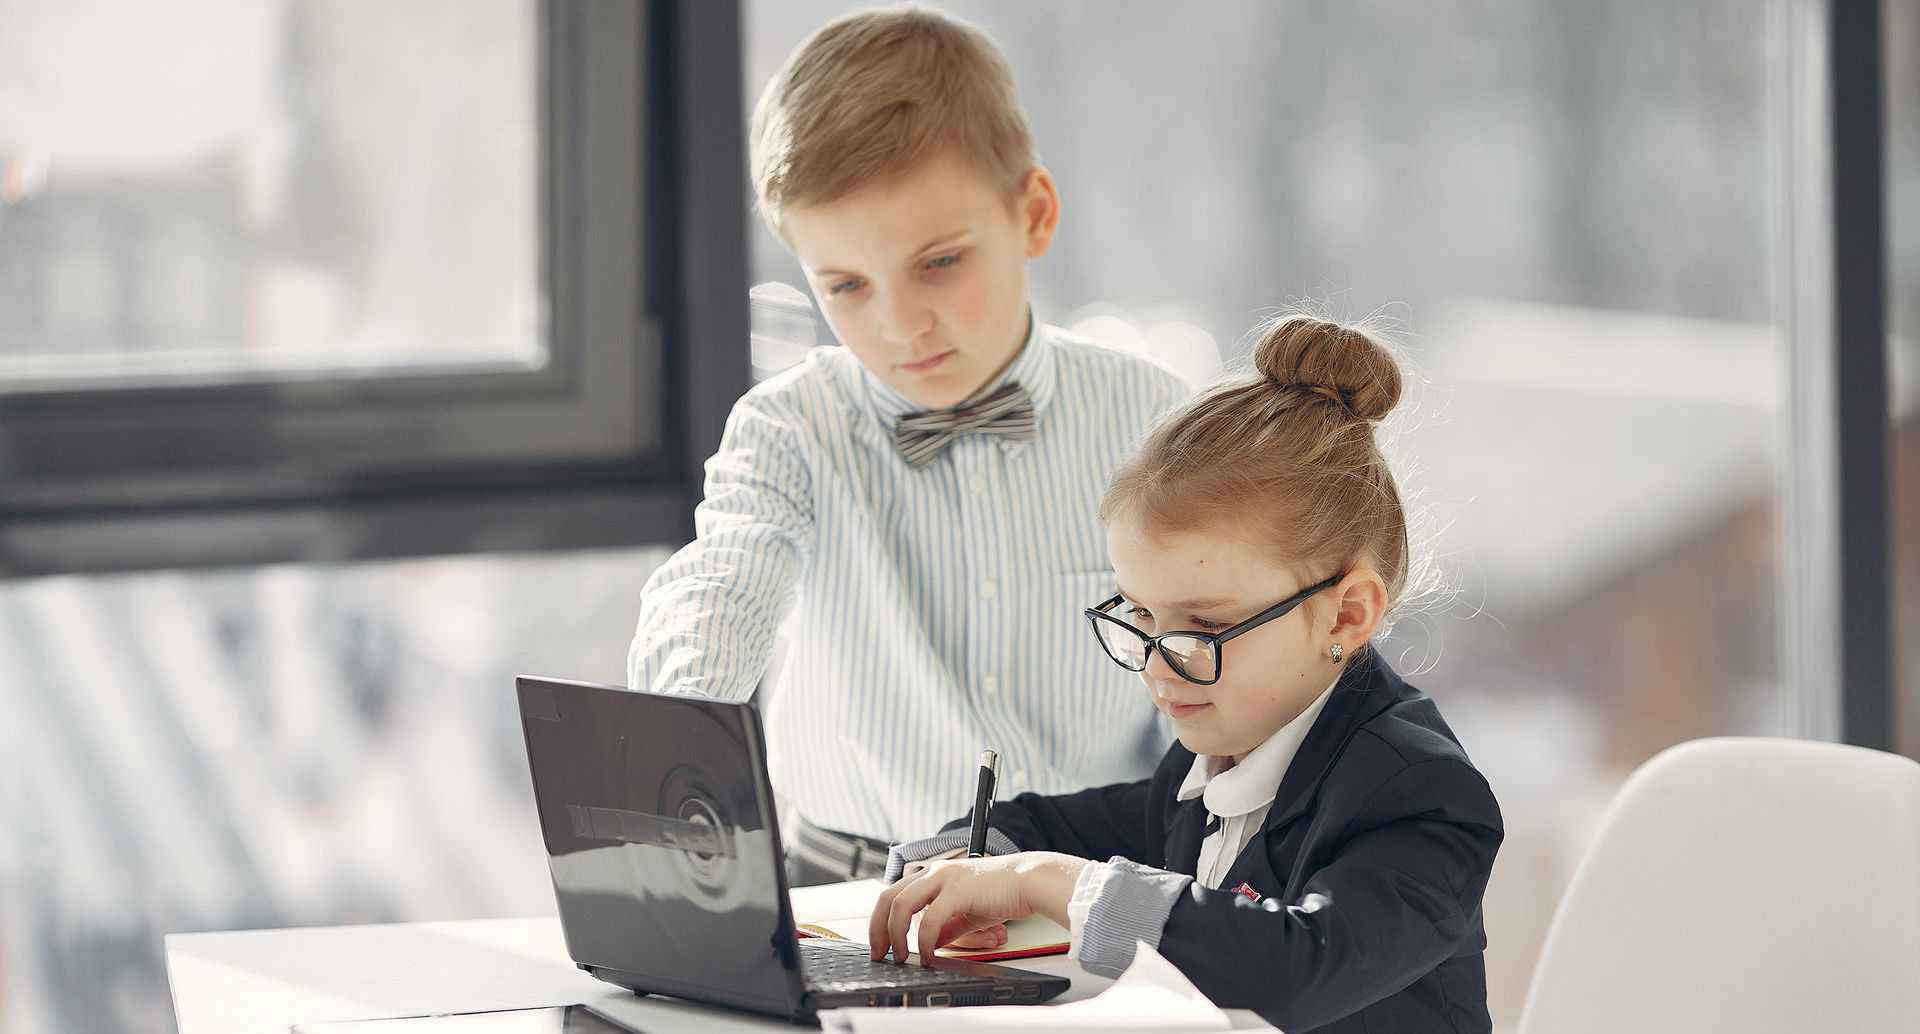 Two children dressed like executives working at a desk